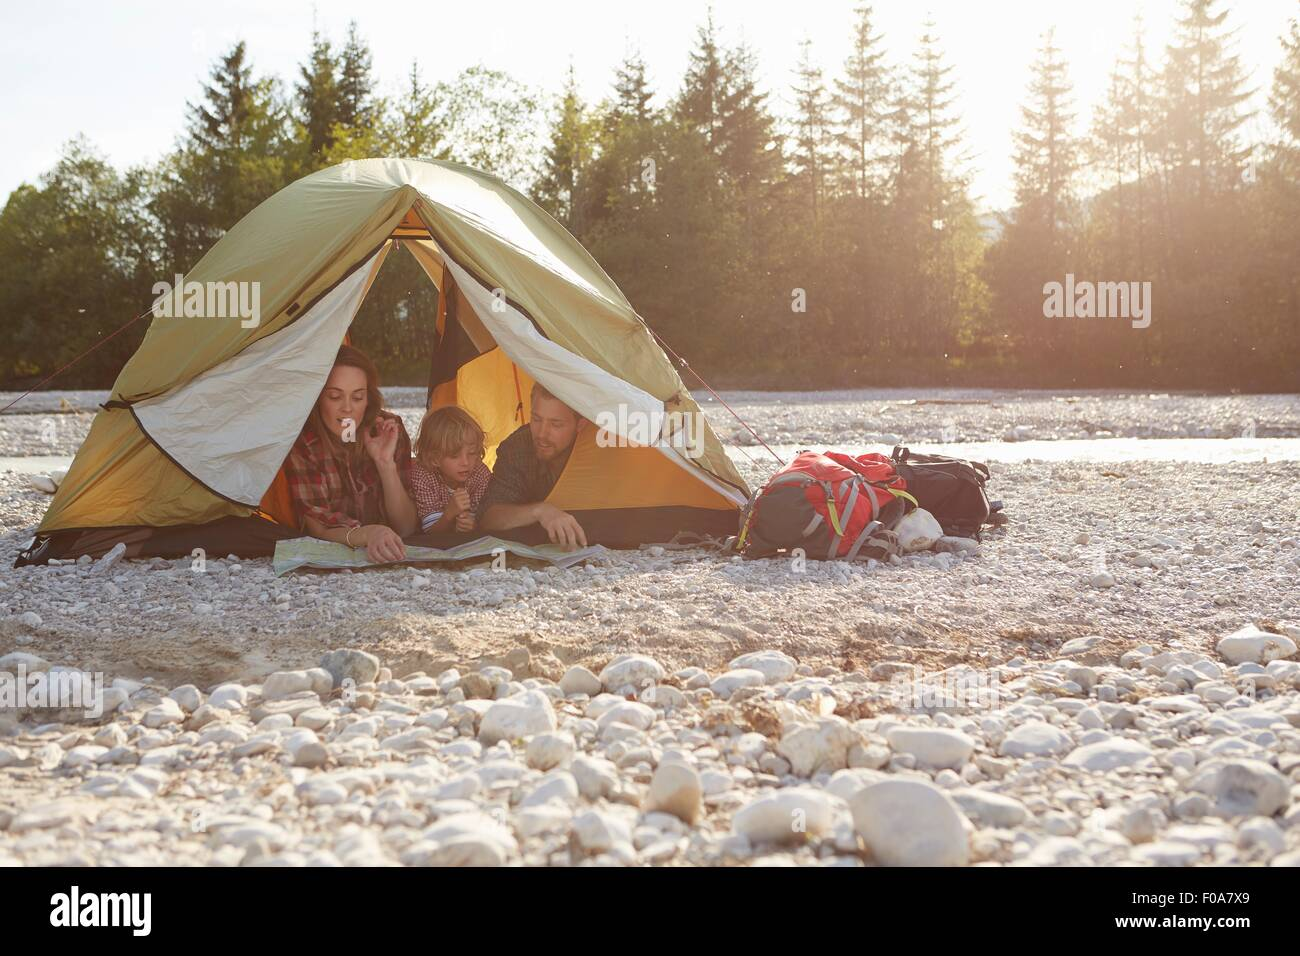 Family lying on fronts side by side in unzipped tent, looking at map - Stock Image